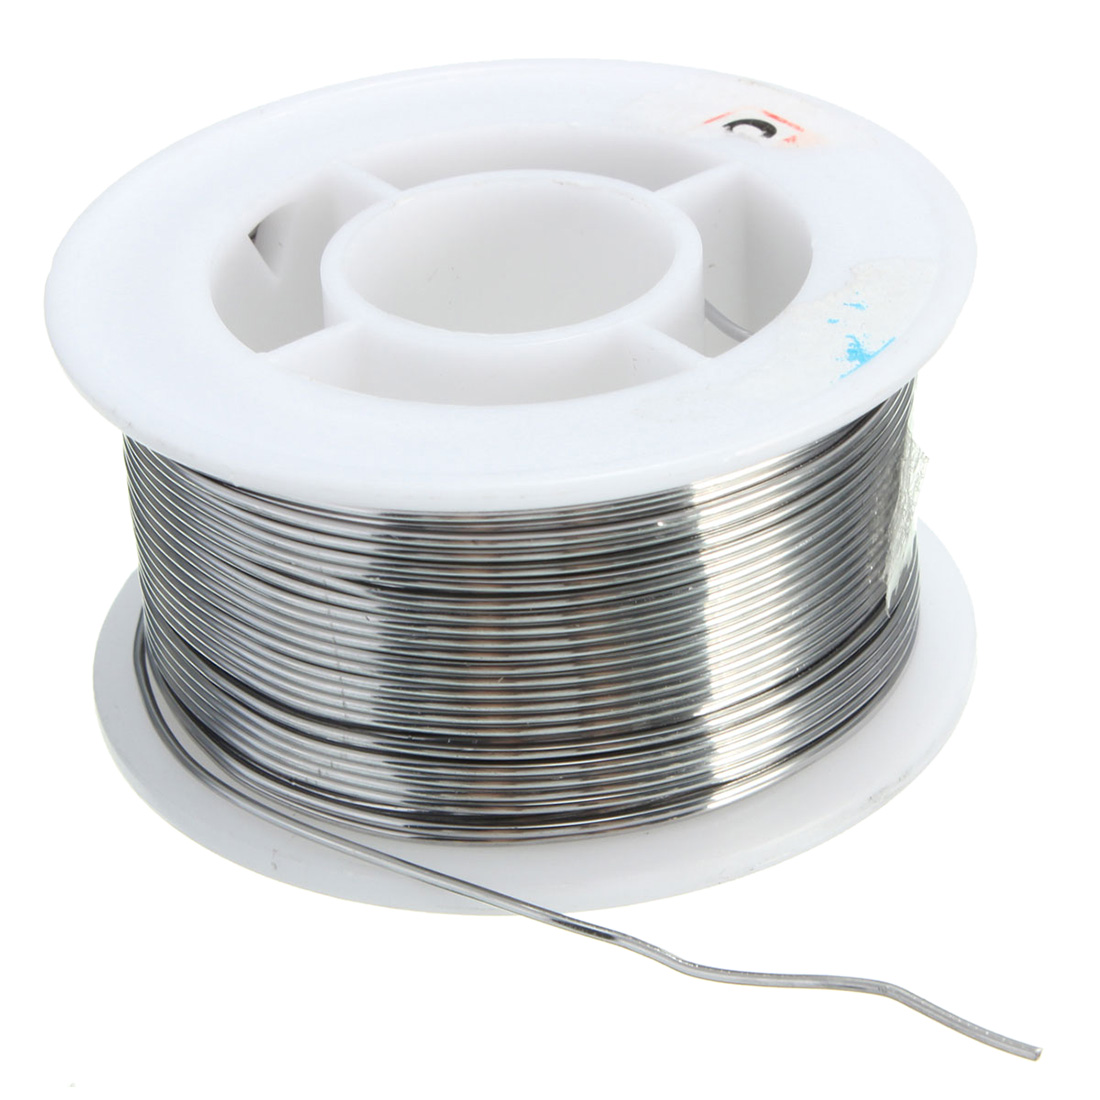 Promotion! 100g 0.8mm 60/40 Tin lead Solder Wire Rosin Core Soldering 2% Flux Reel Tube ...